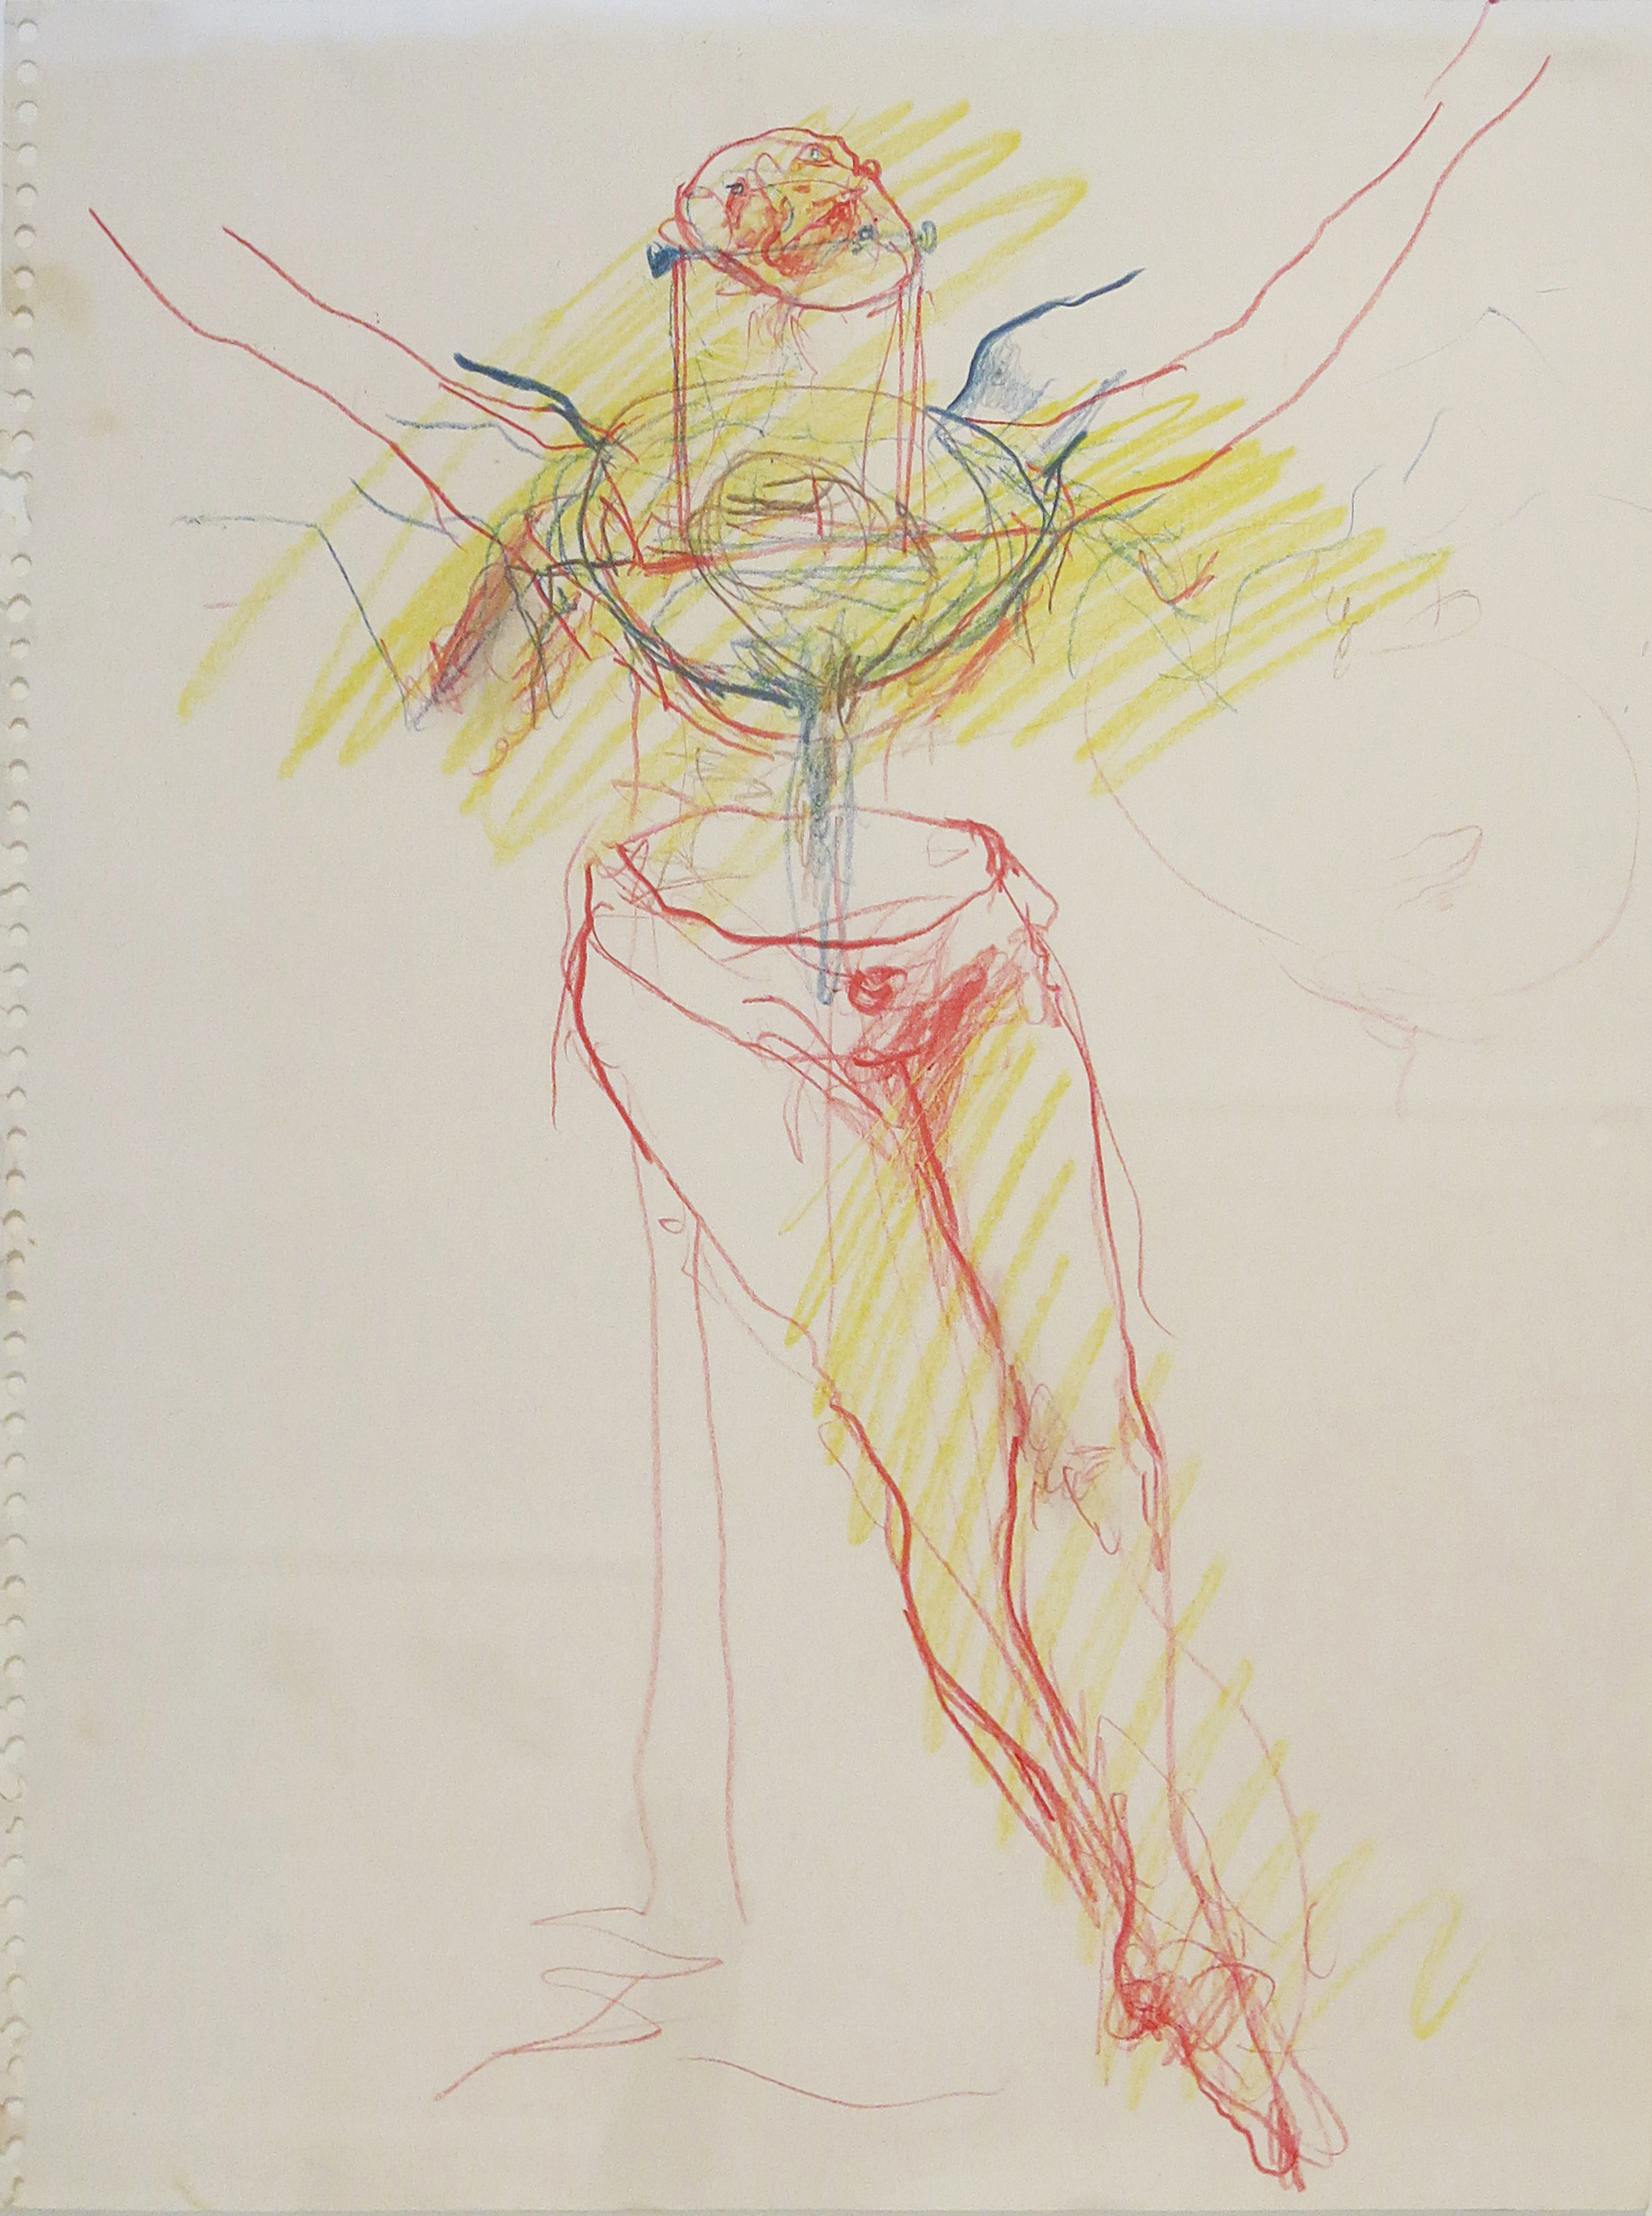 June Leaf, Study for Woman Monument #2, 1975, colored pencil on paper, 17h x 14w in.